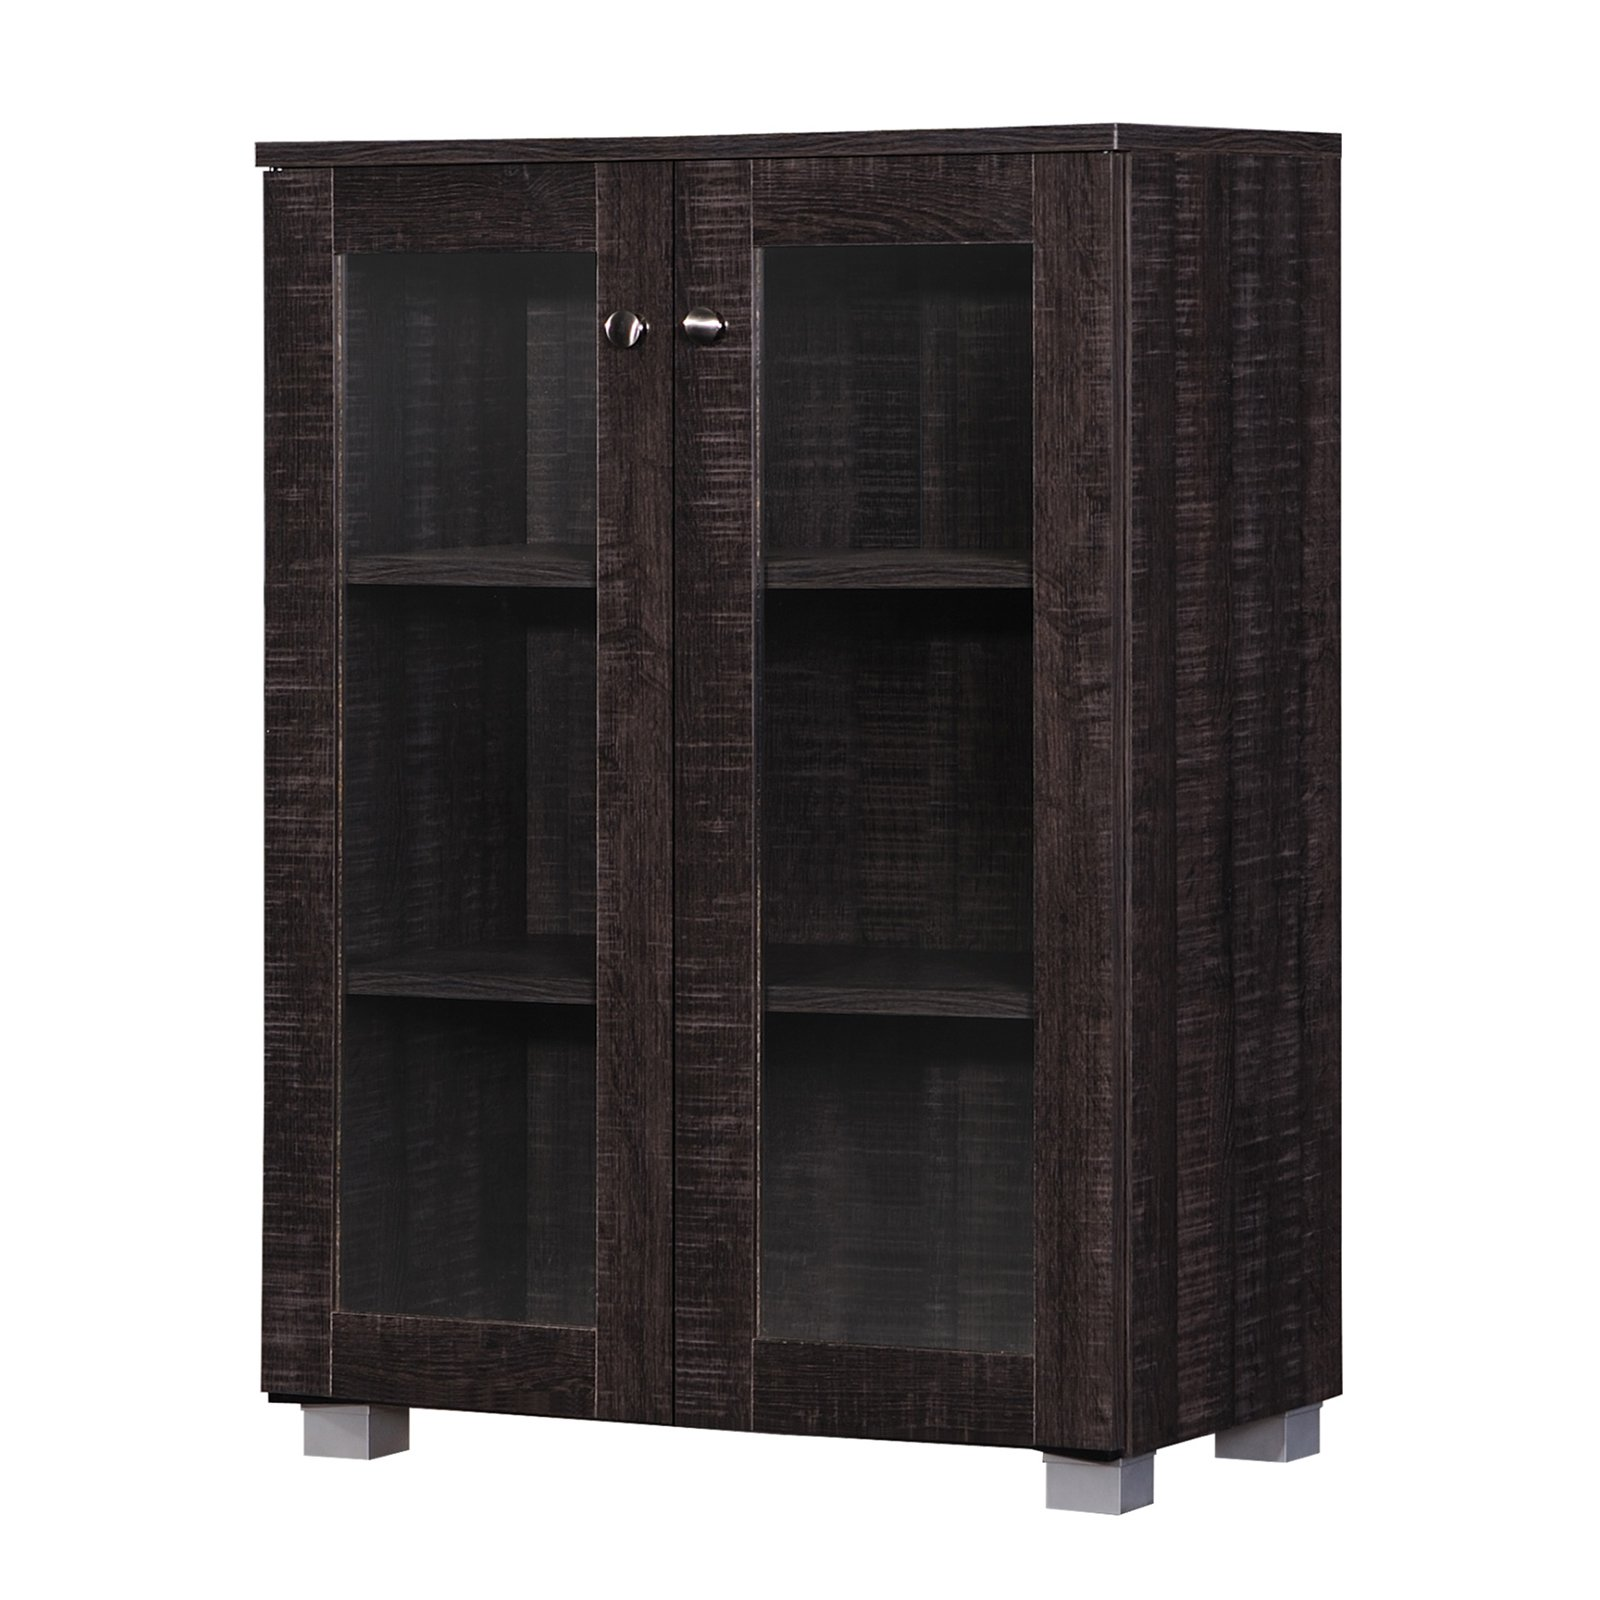 Delicieux Baxton Studio Mason Modern And Contemporary Dark Brown Multipurpose Storage  Cabinet Sideboard With 2 Class Doors